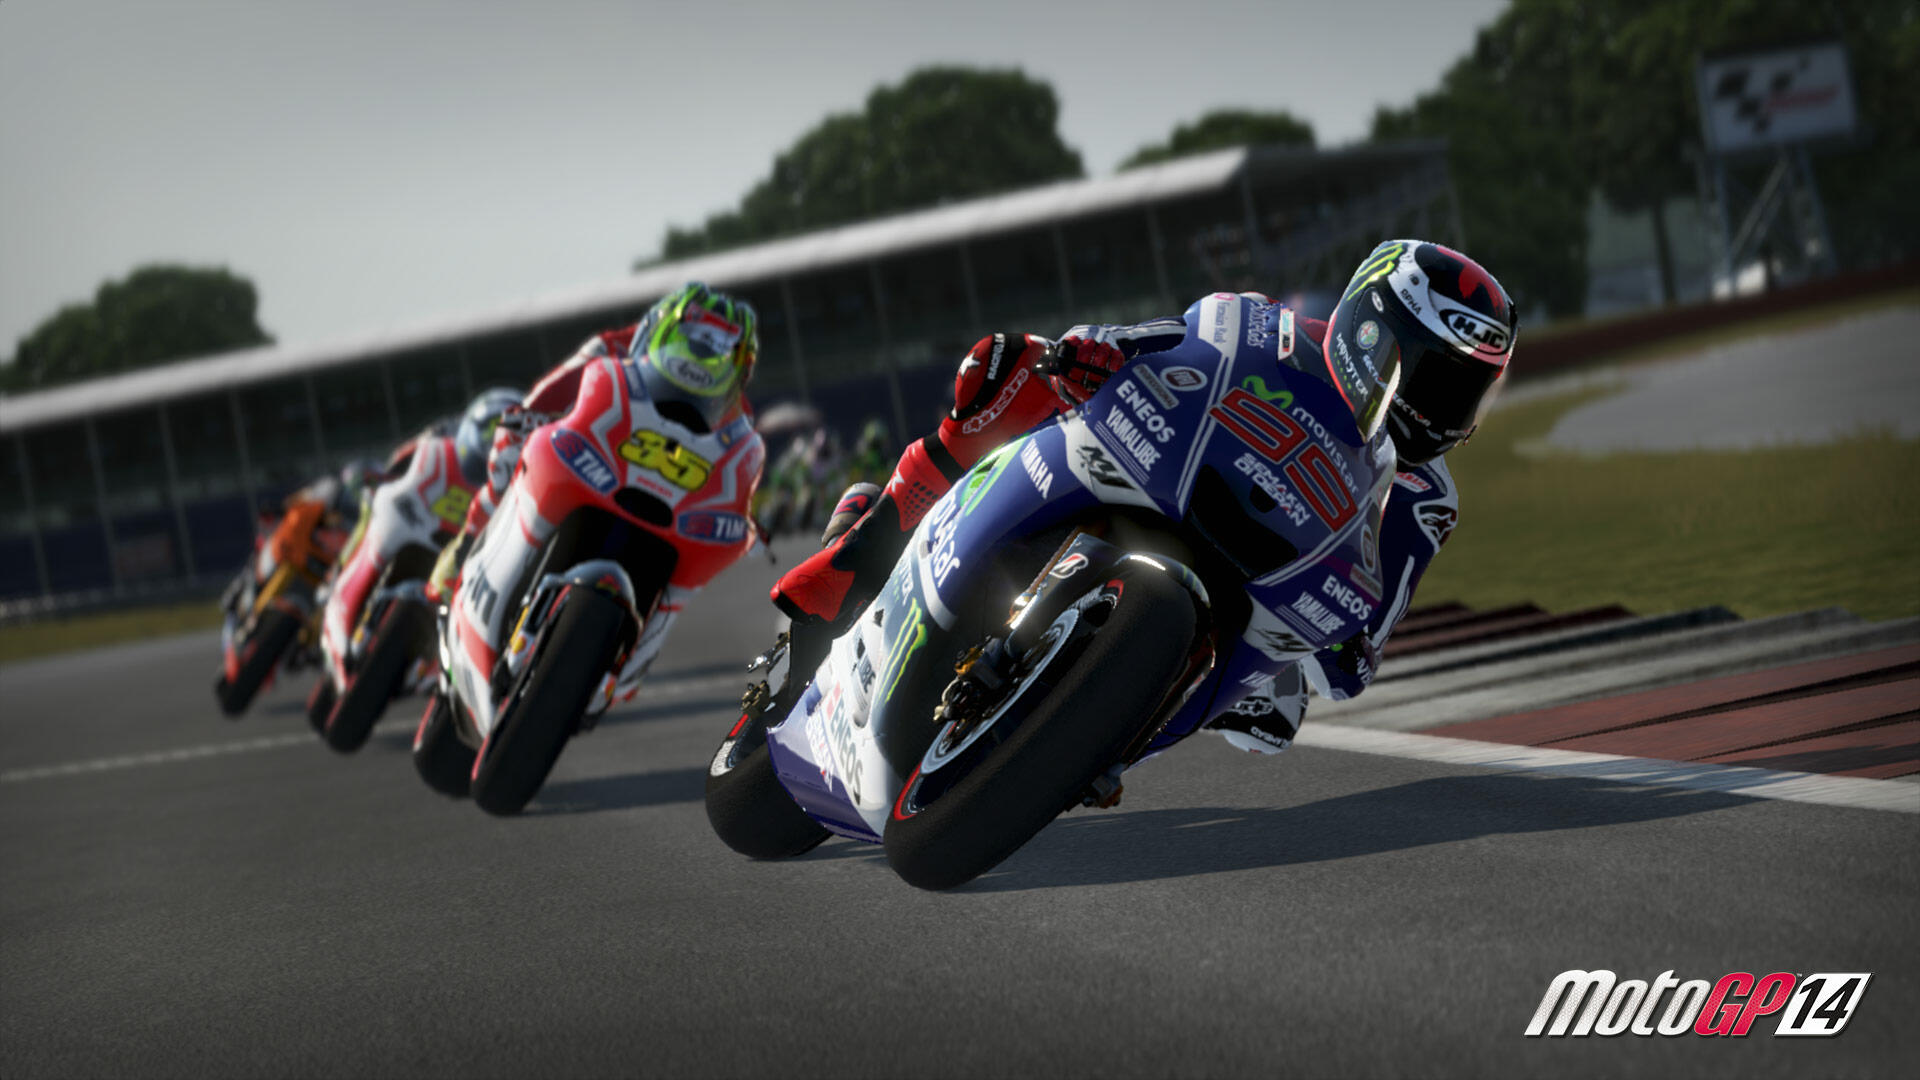 MotoGP 14 PS4 Review: Goes Better than it Shows